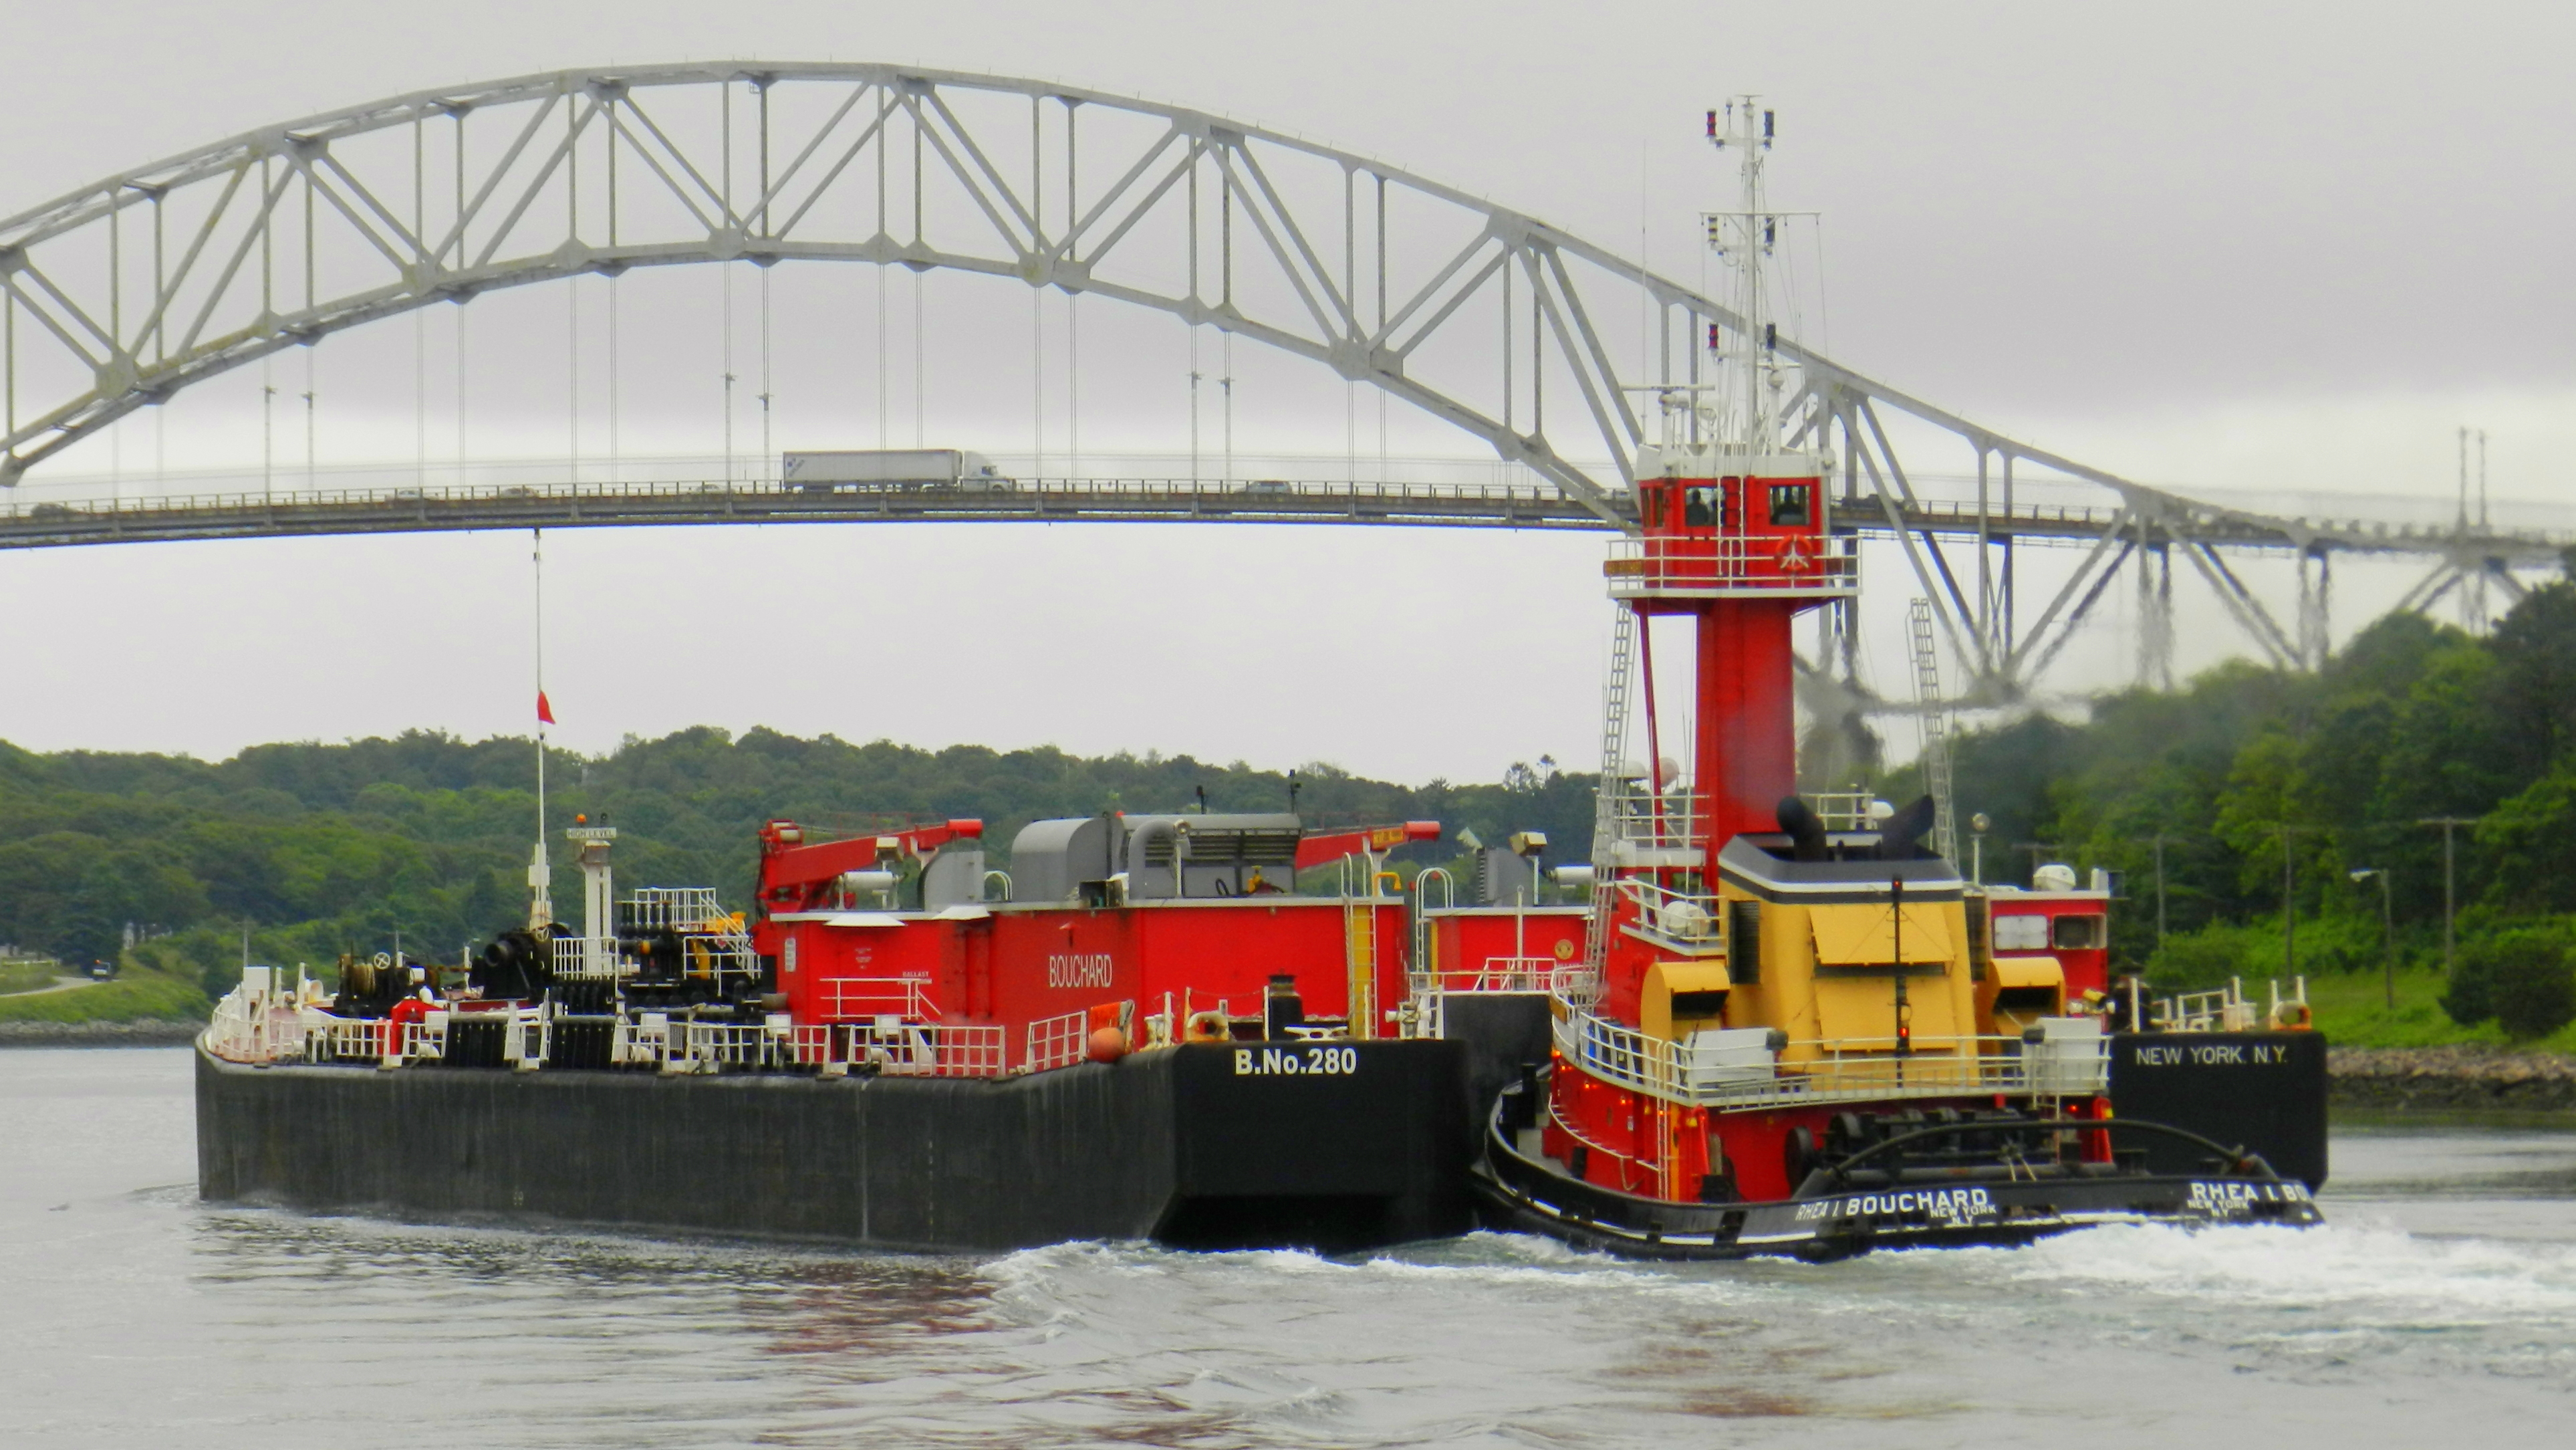 Oil barge at the Cape Cod Canal, 2011.